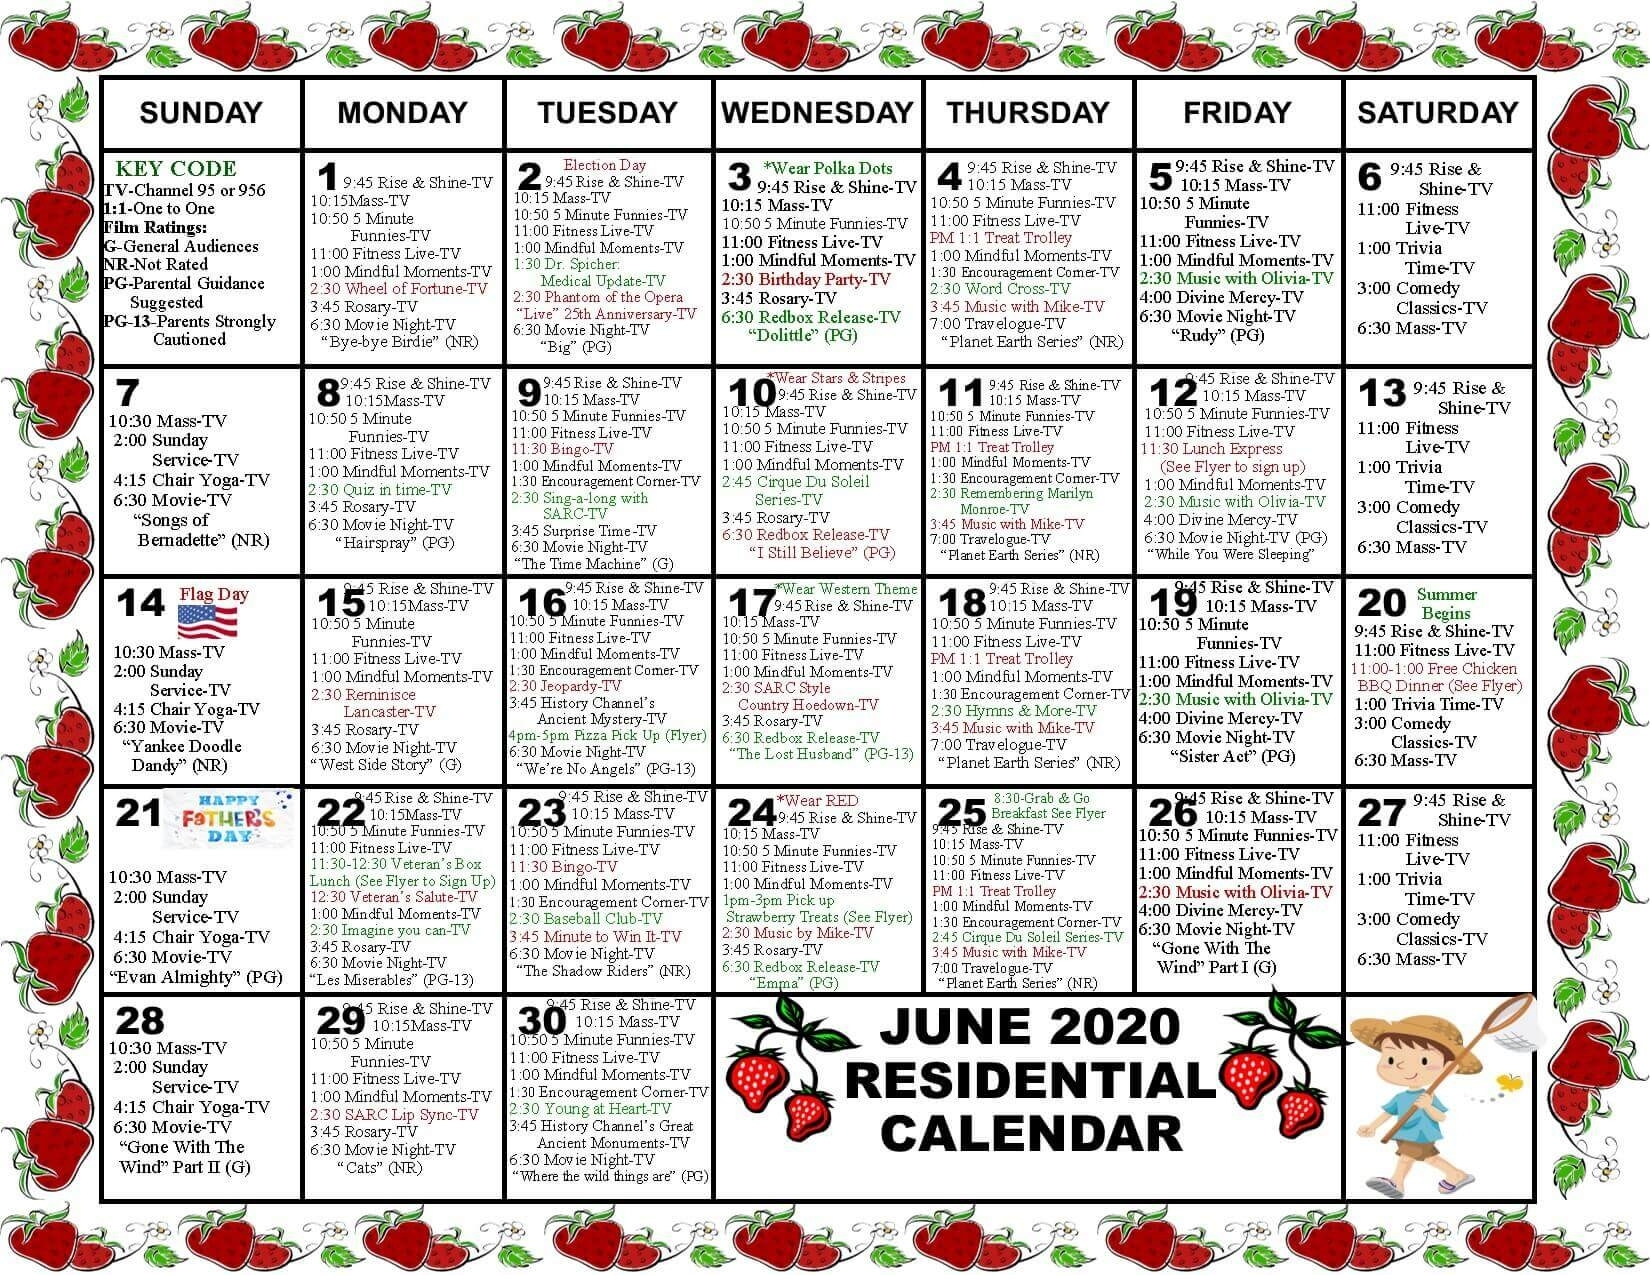 Monthly Community Calendars - St. Anne's Retirement Community